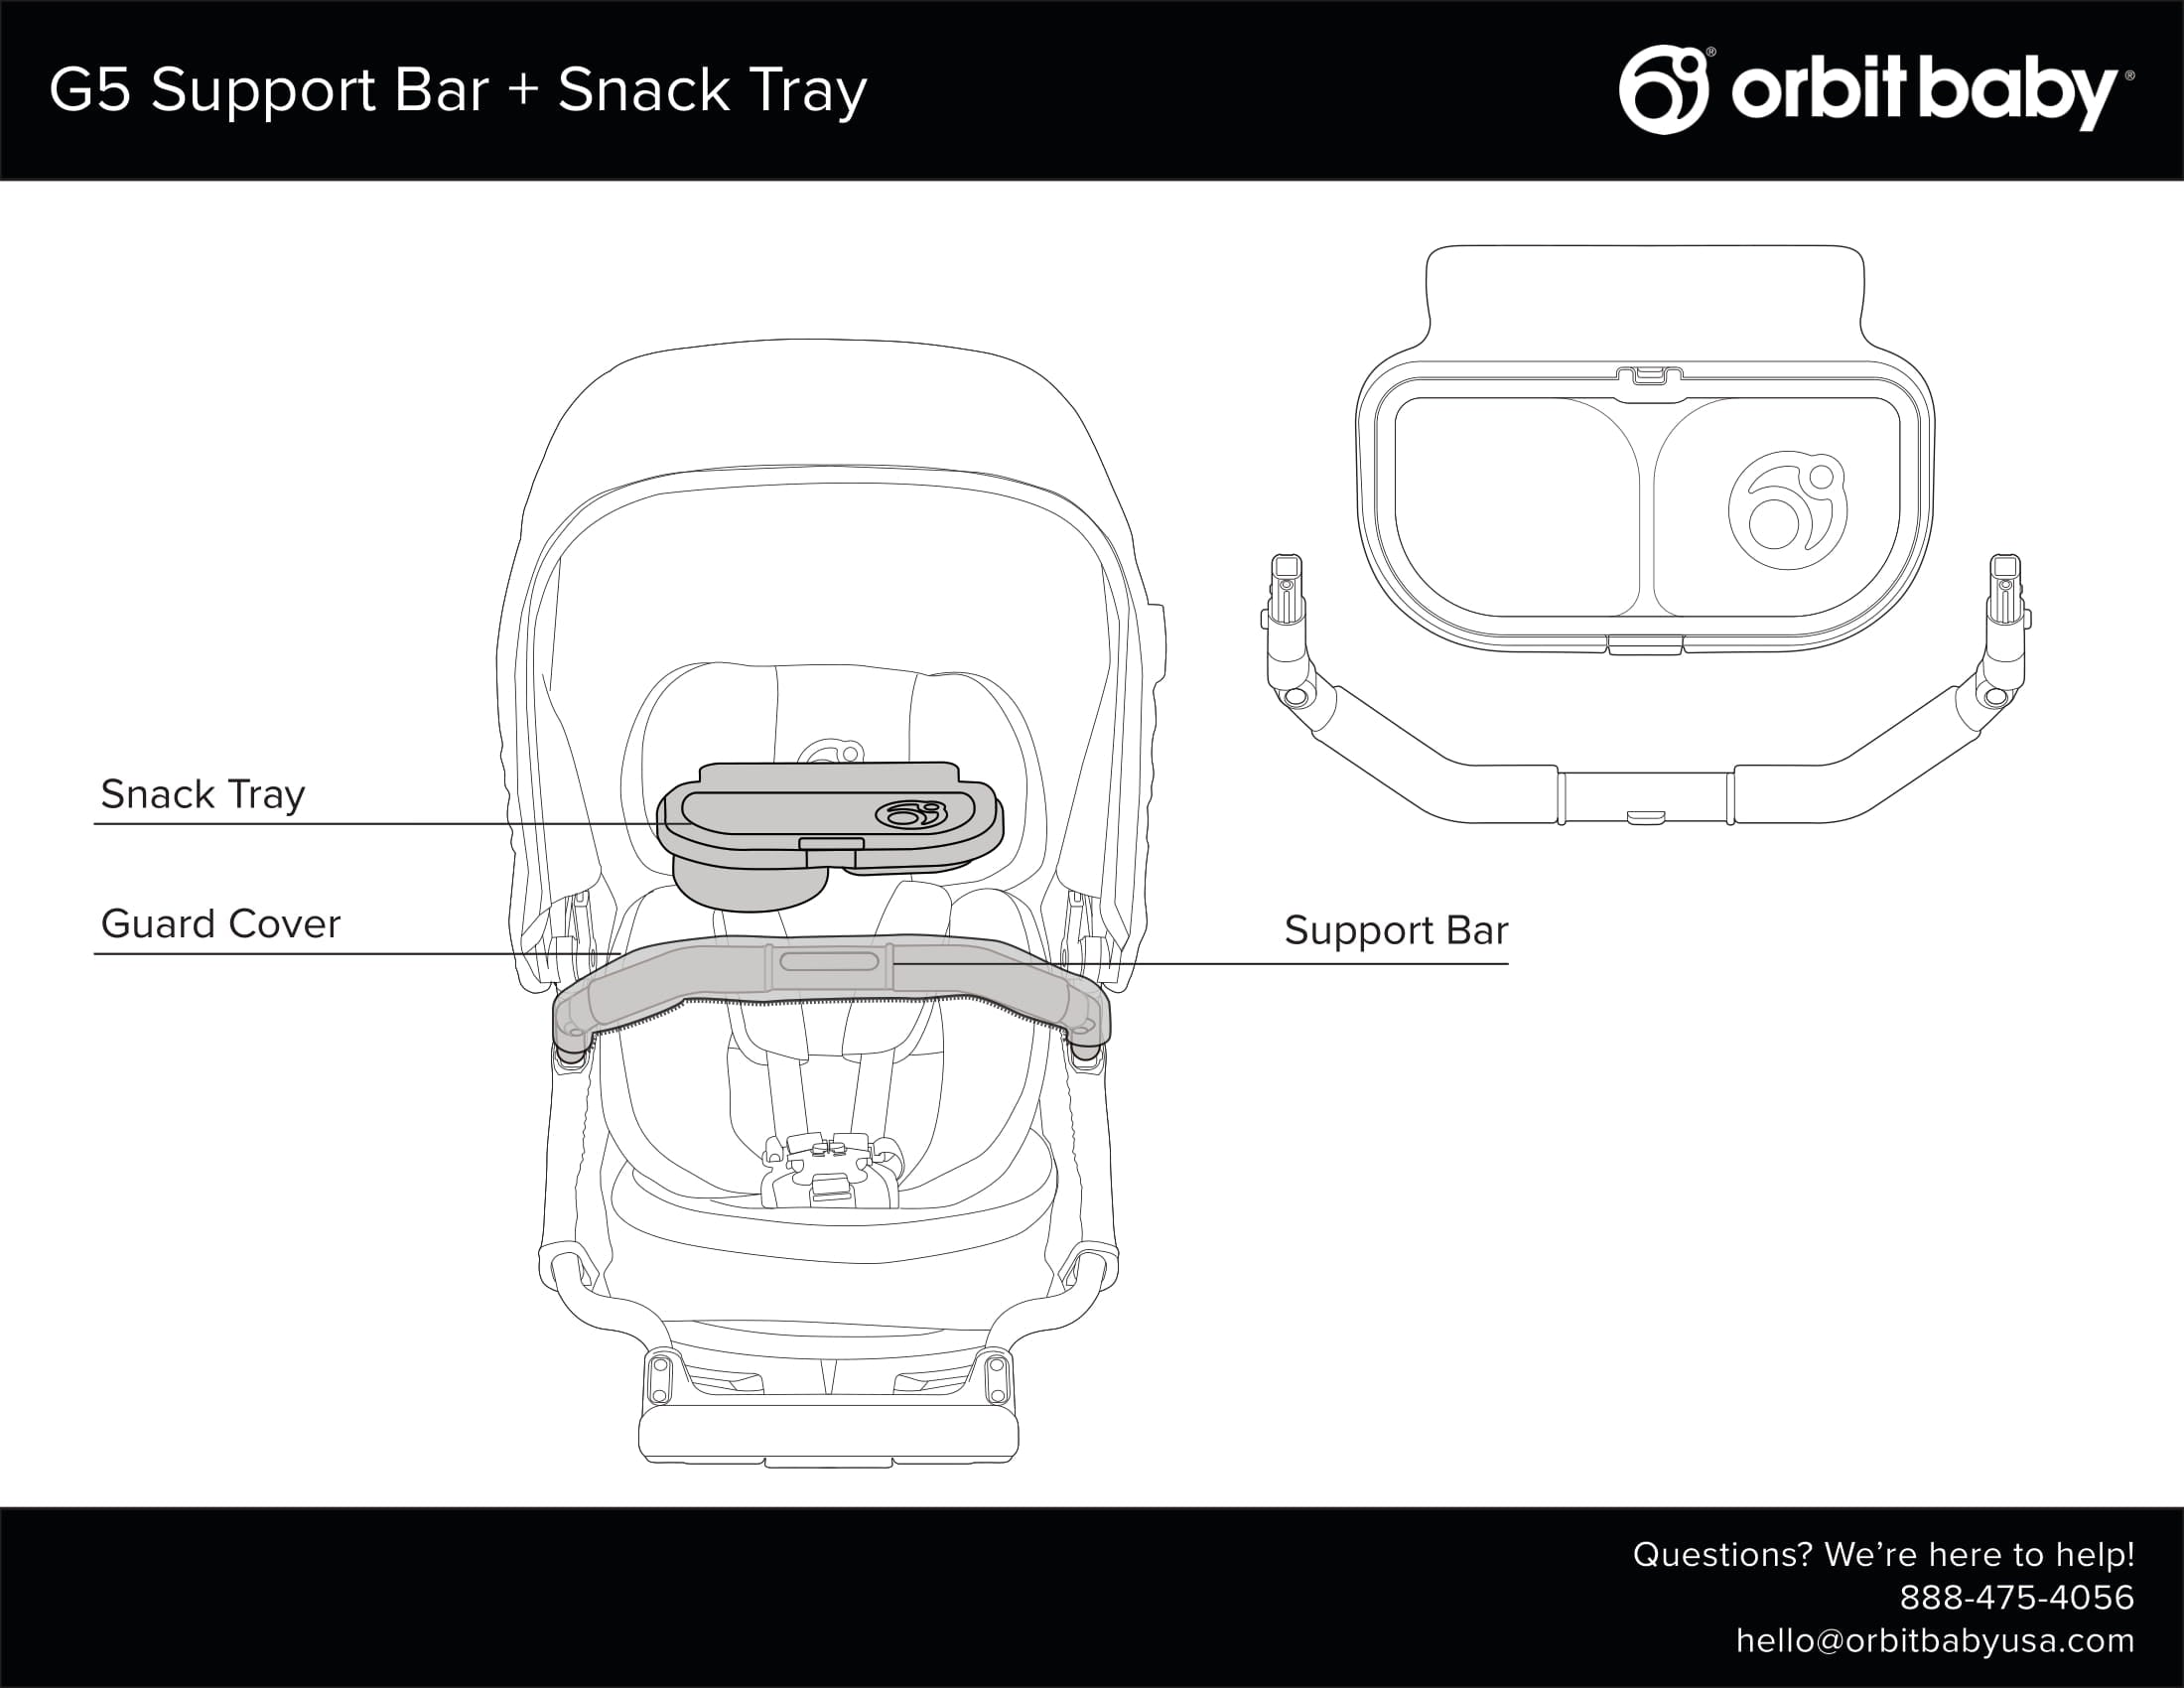 G5 Support Bar and Snack Tray Manual